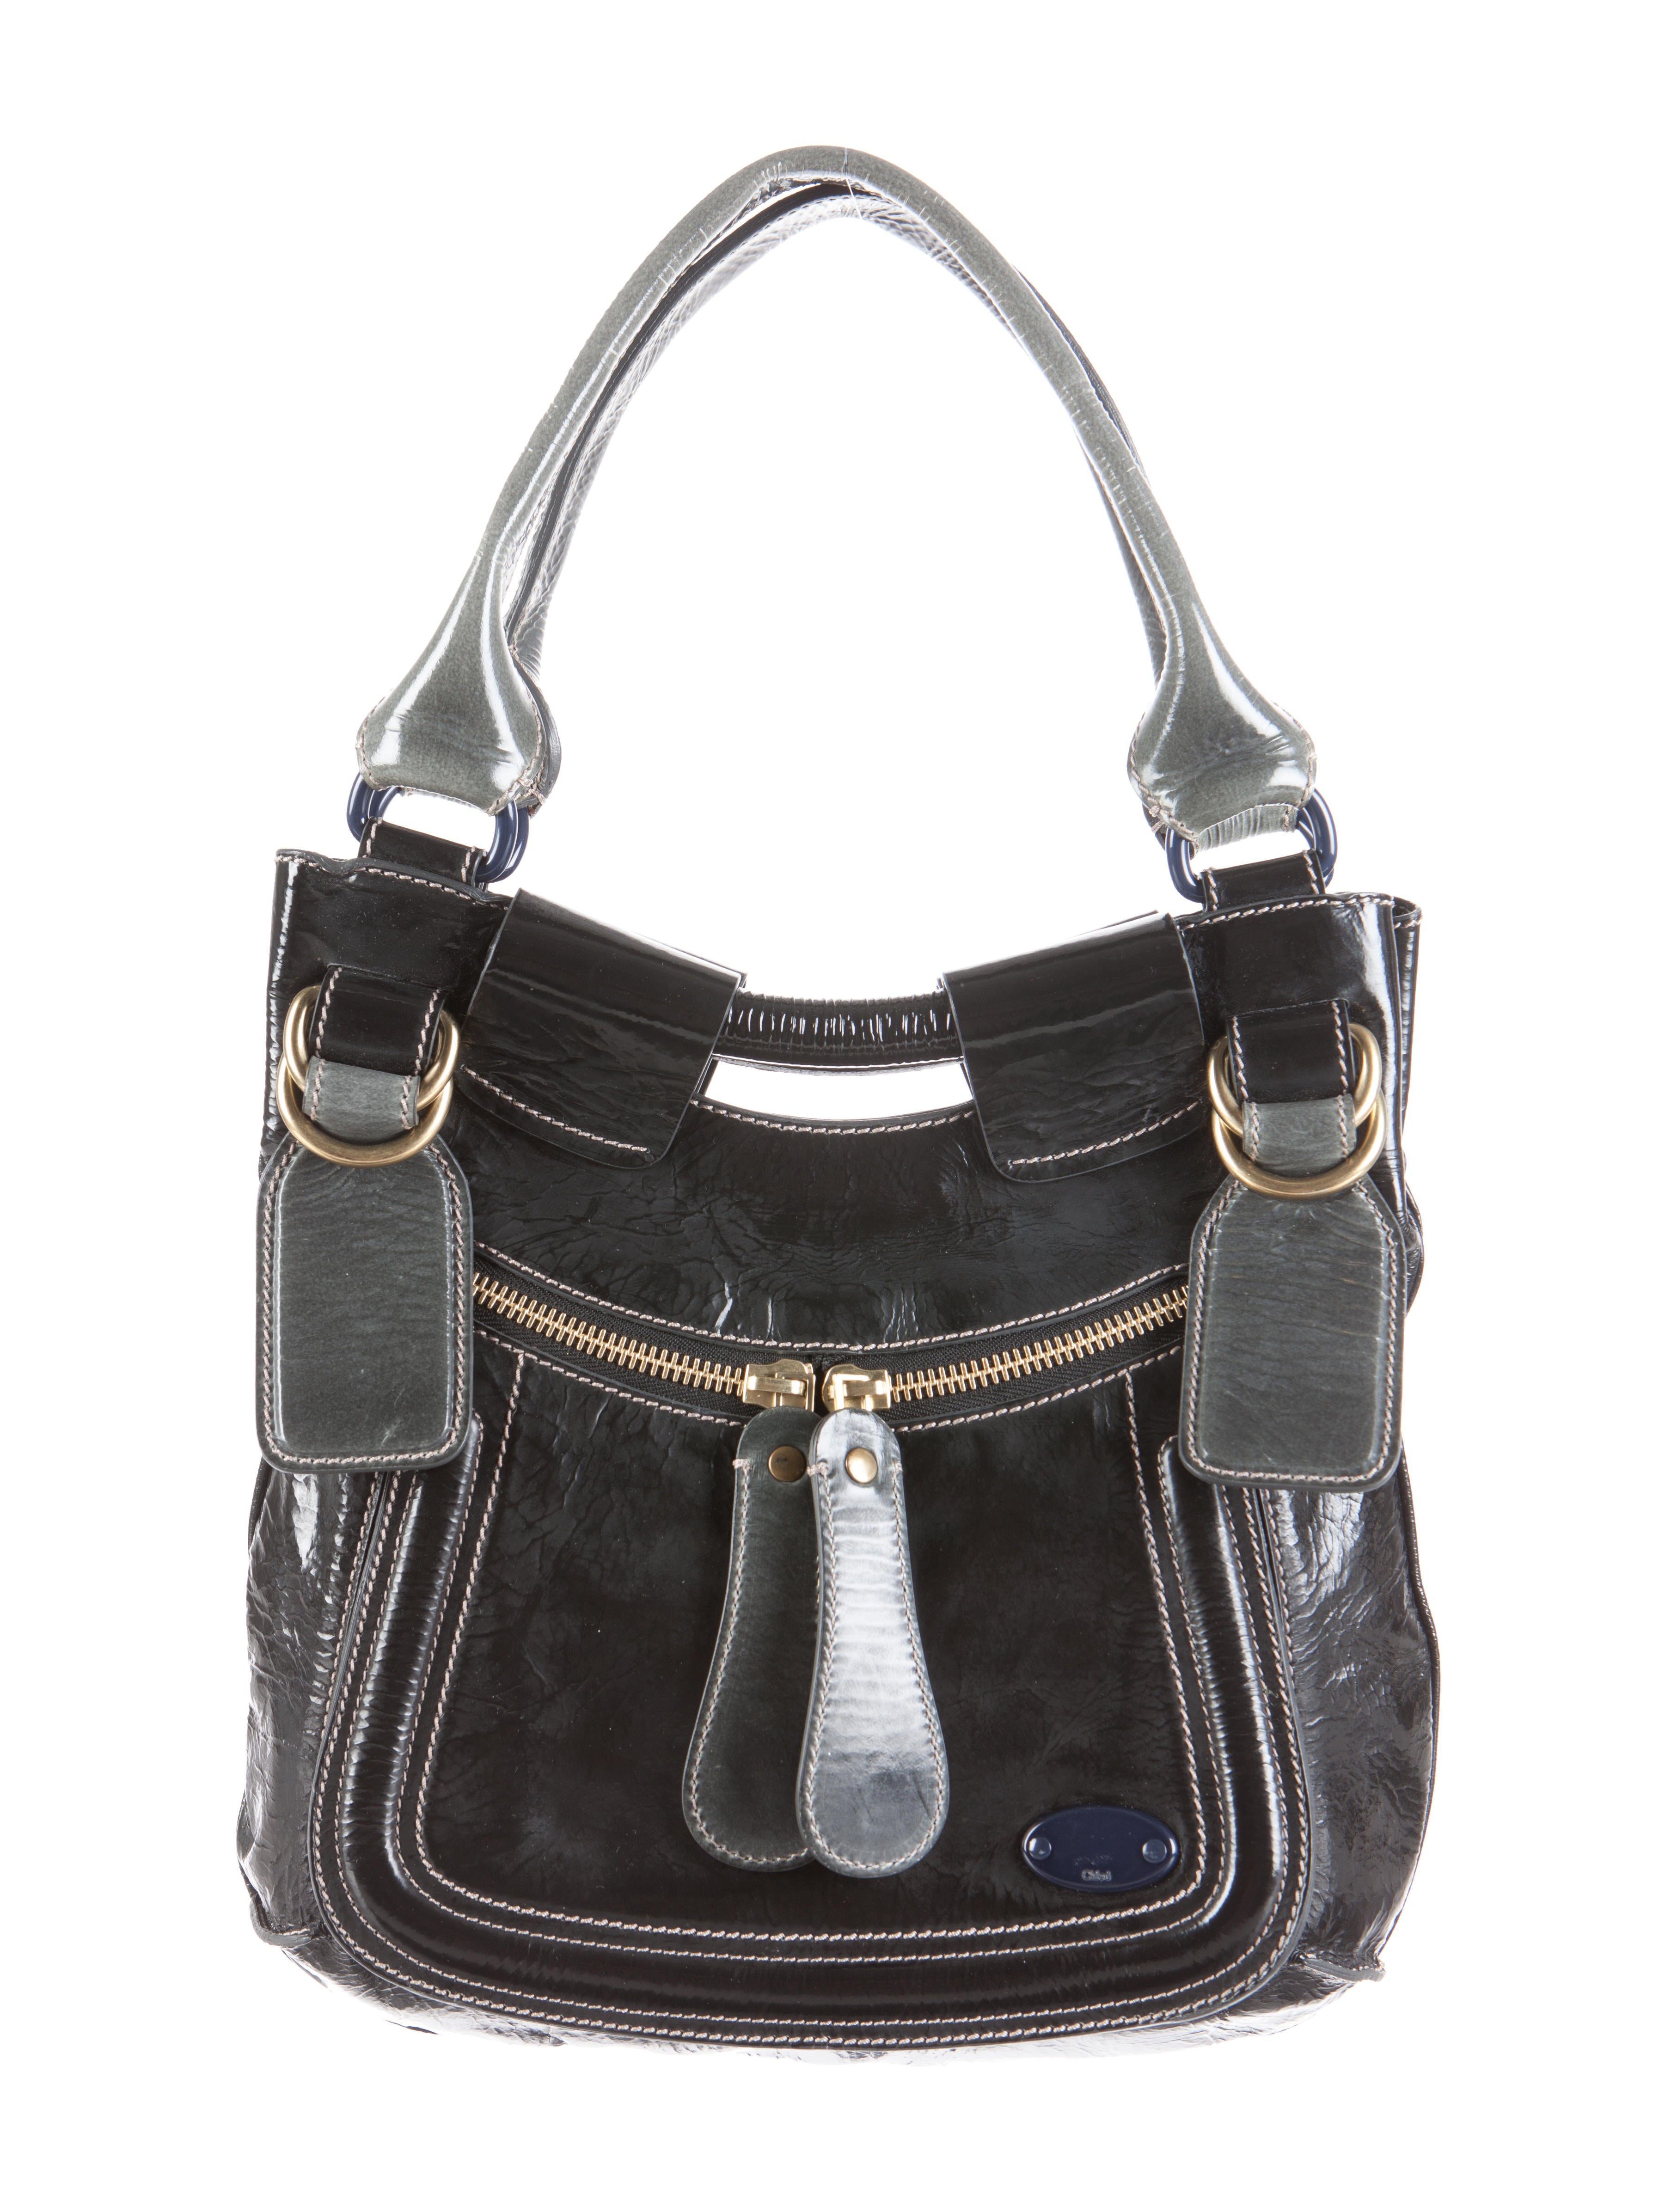 auth chloe handbags leather betty